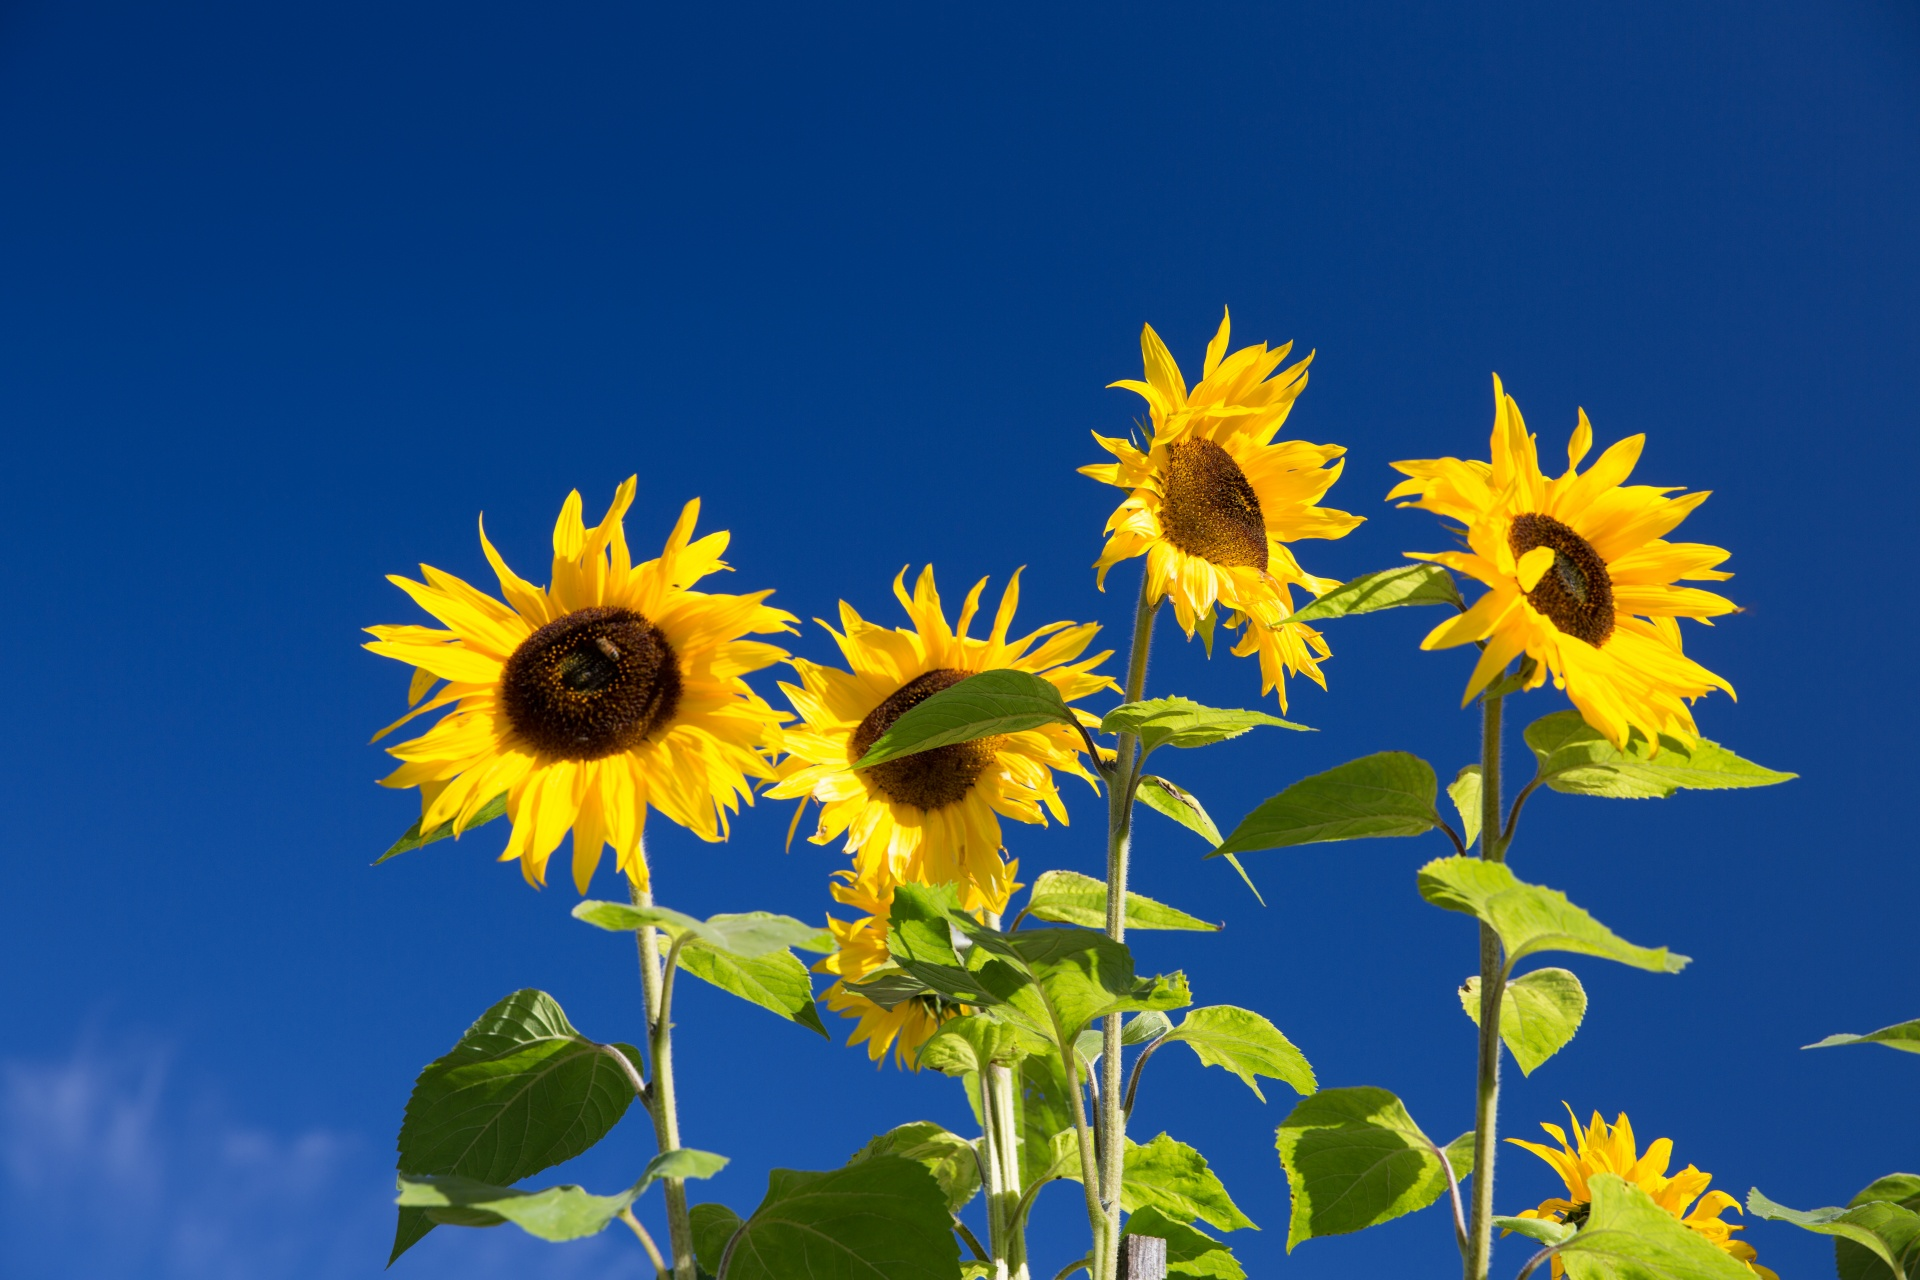 Fall Desktop Wallpaper With Sunflowers Sunflowers And Blue Sky Free Stock Photo Public Domain